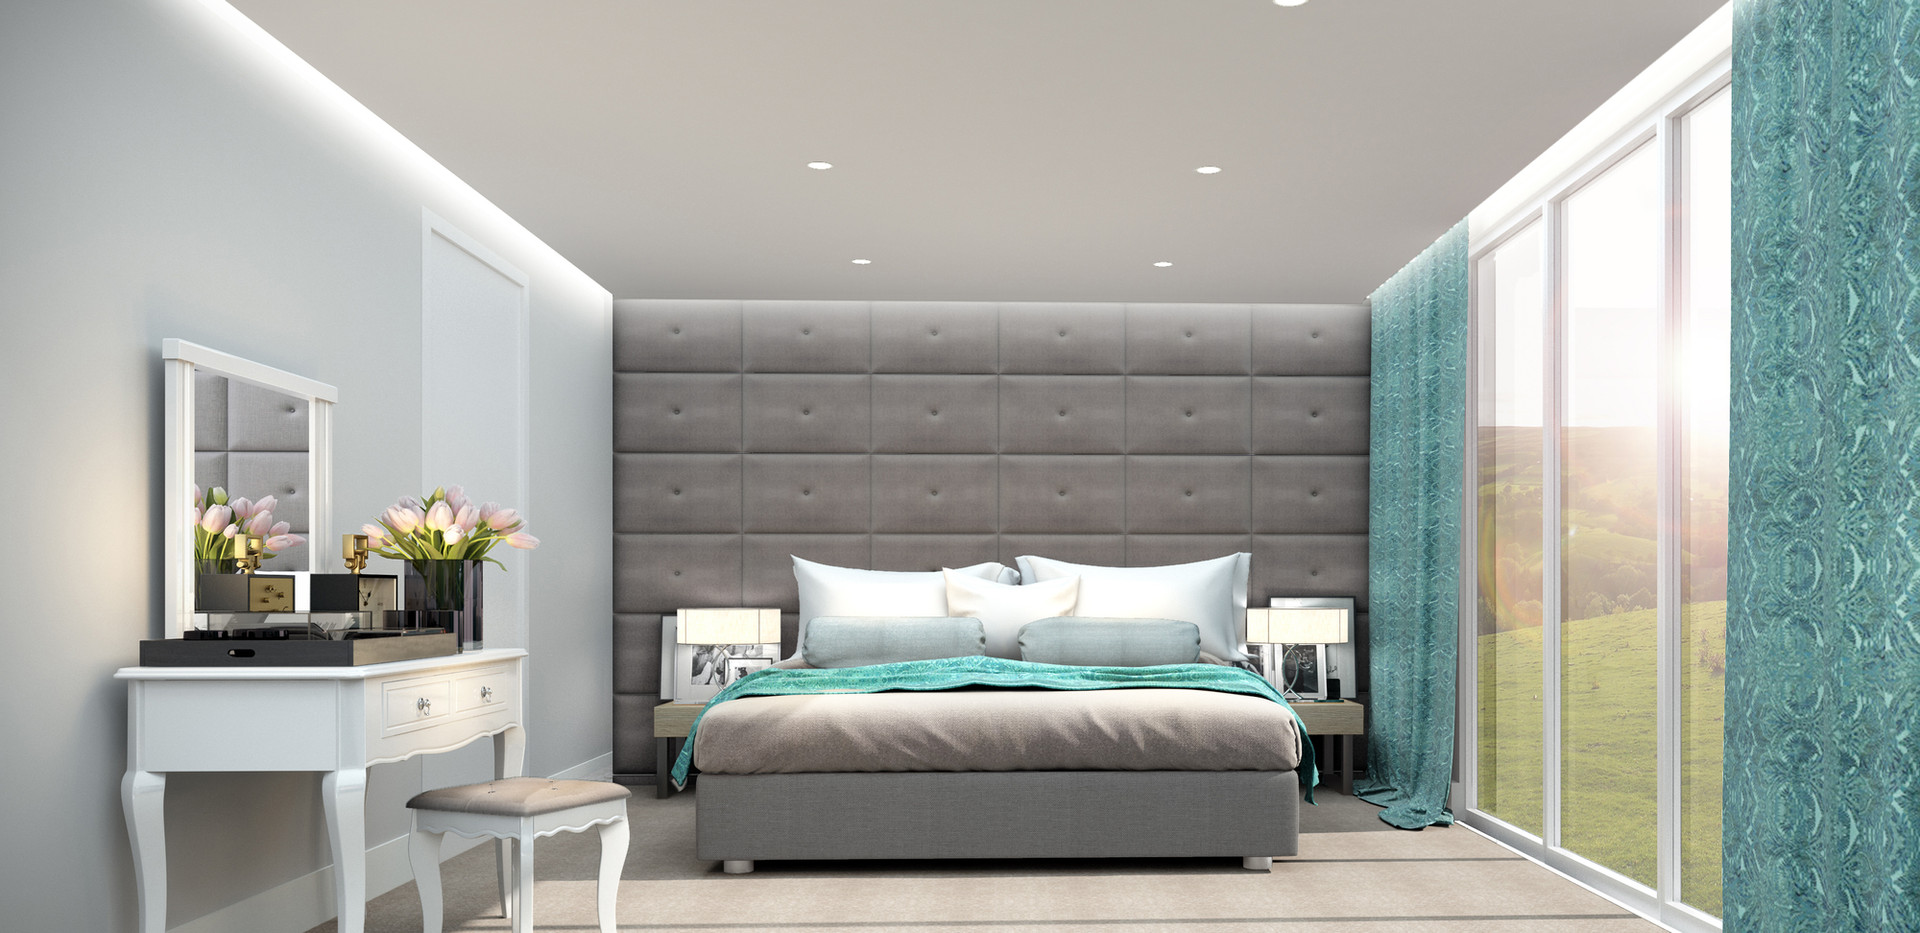 Villa Bedroom_Scheme-3.jpg